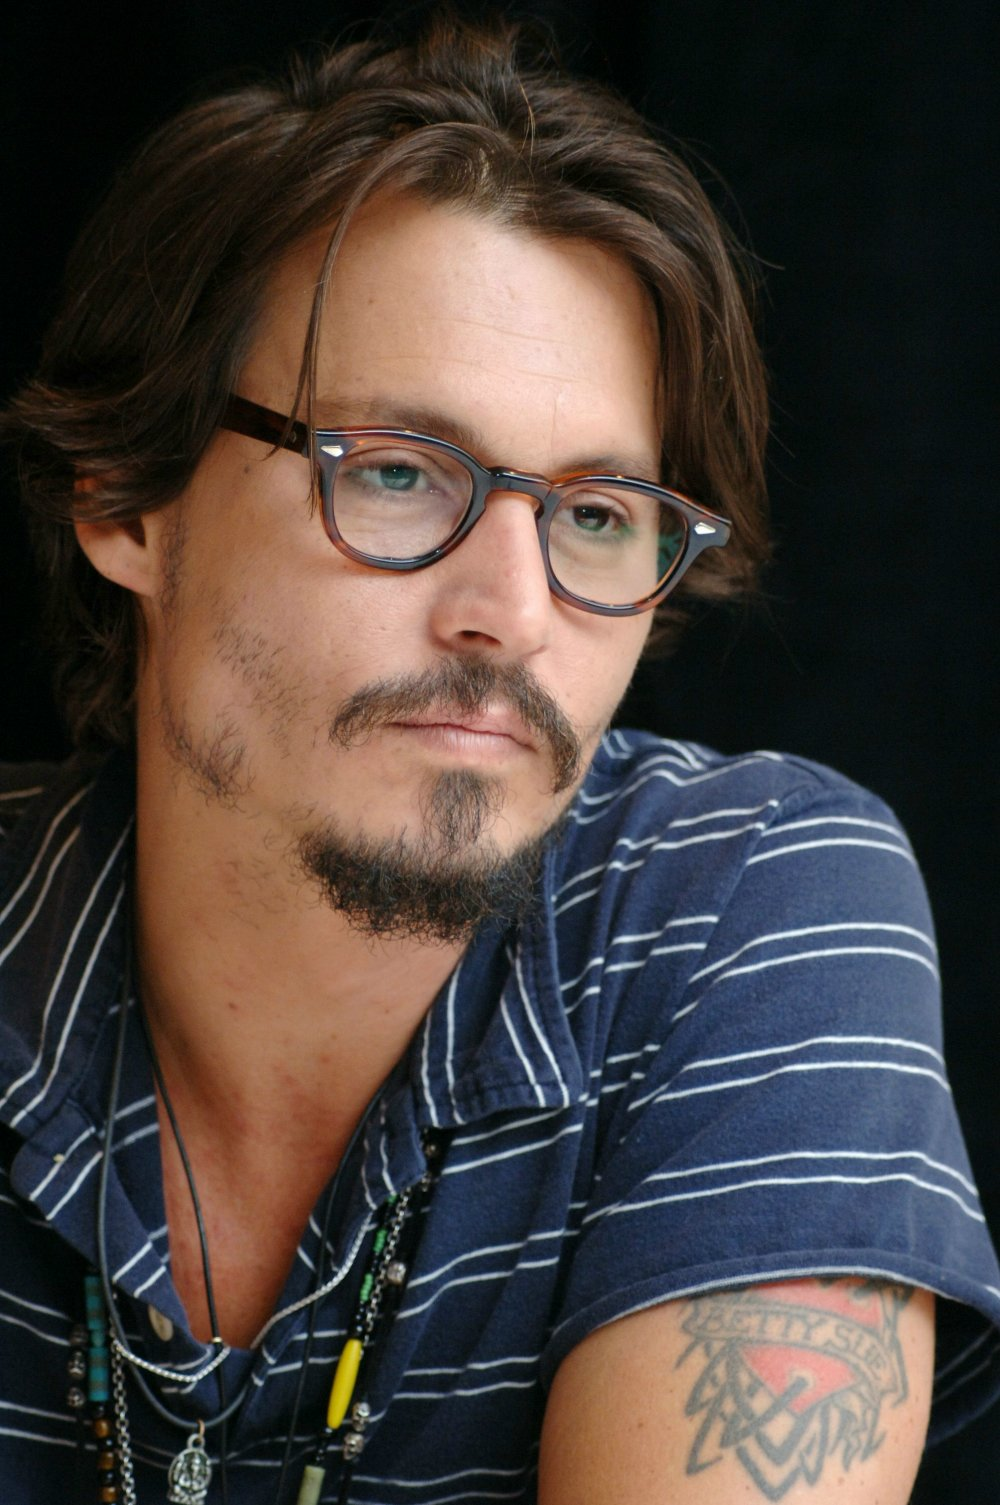 Johnny Depp Talented Actor